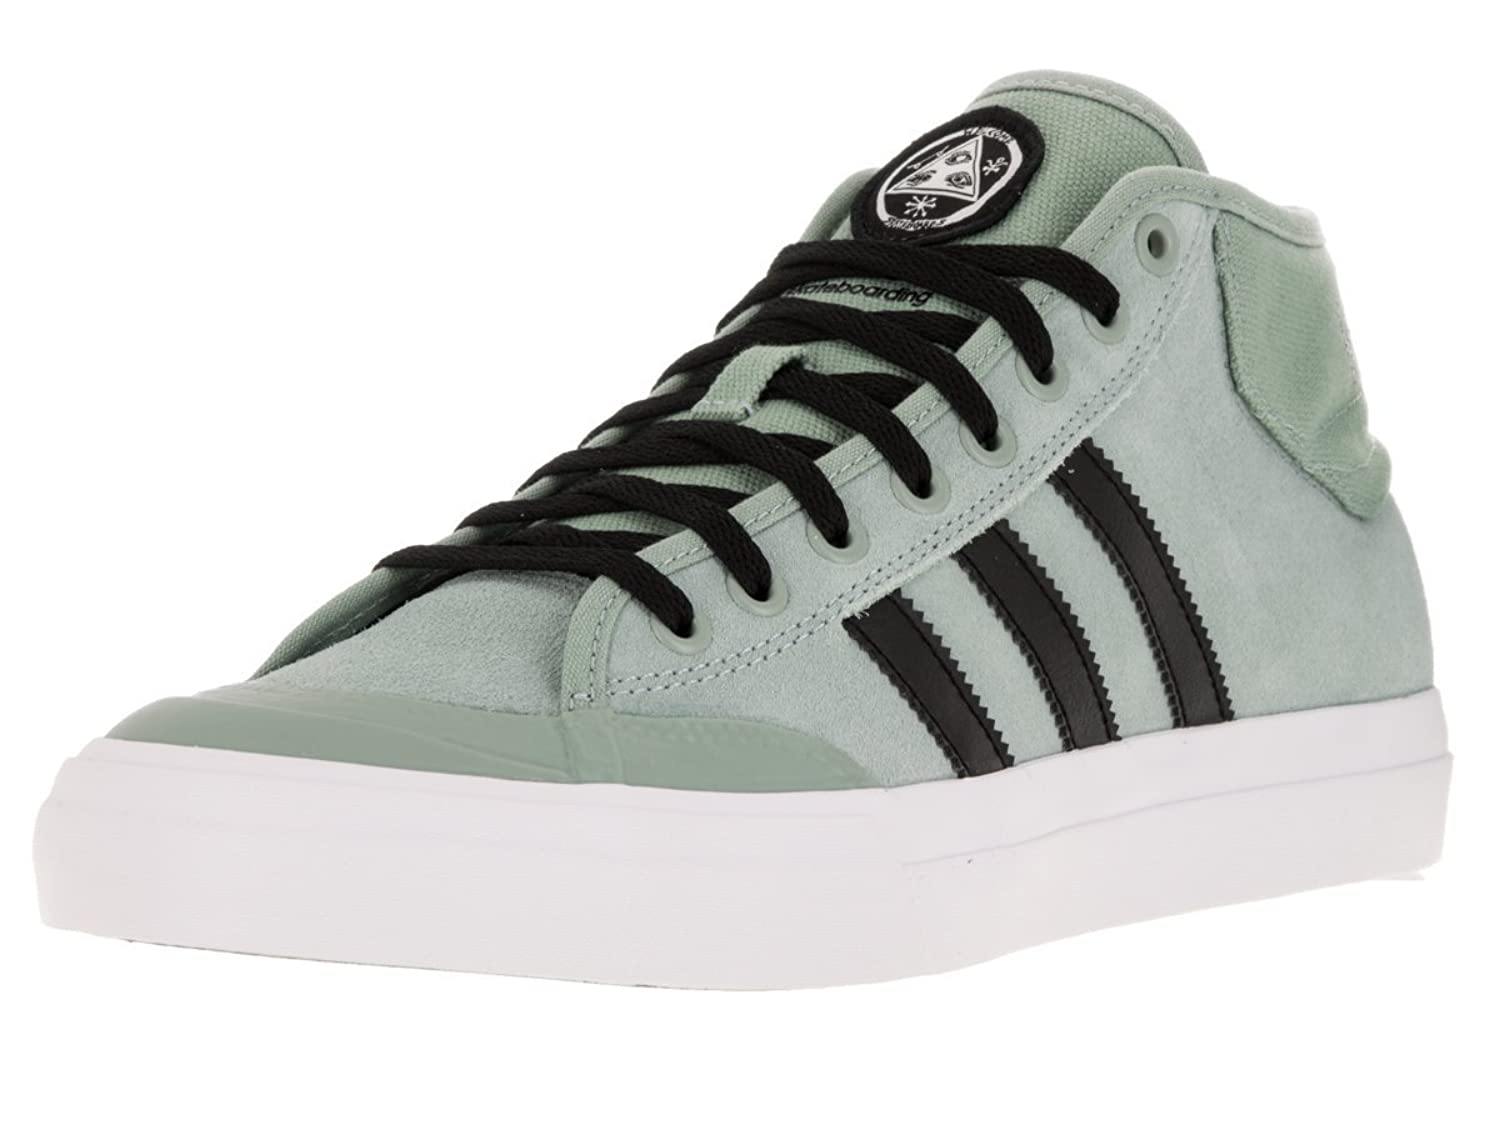 Adidas Men's Matchcourt Mid X Welcome Skate Shoe well-wreapped